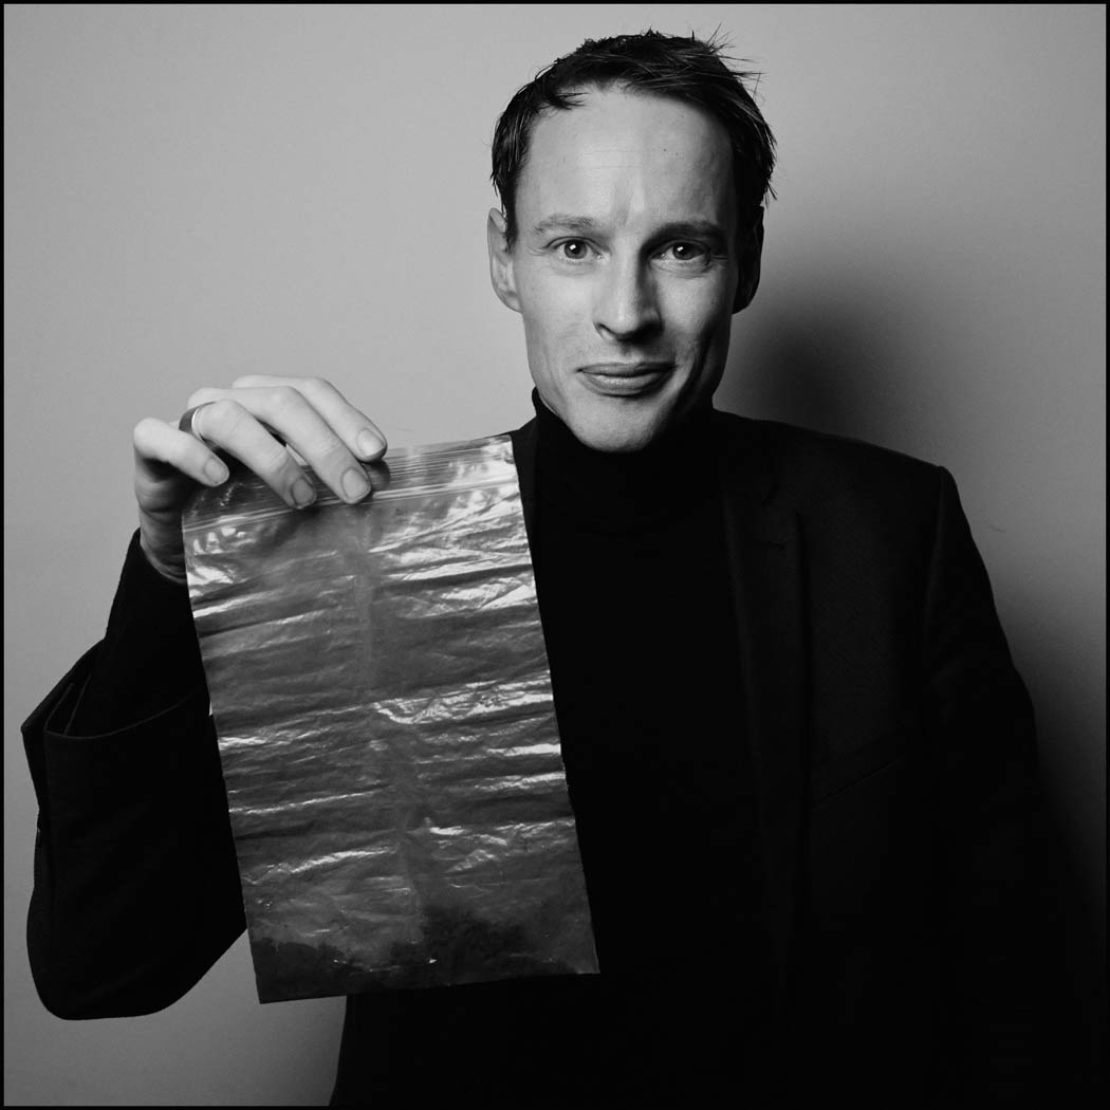 Daan Roosegaarde holds a bag of collected smog particles